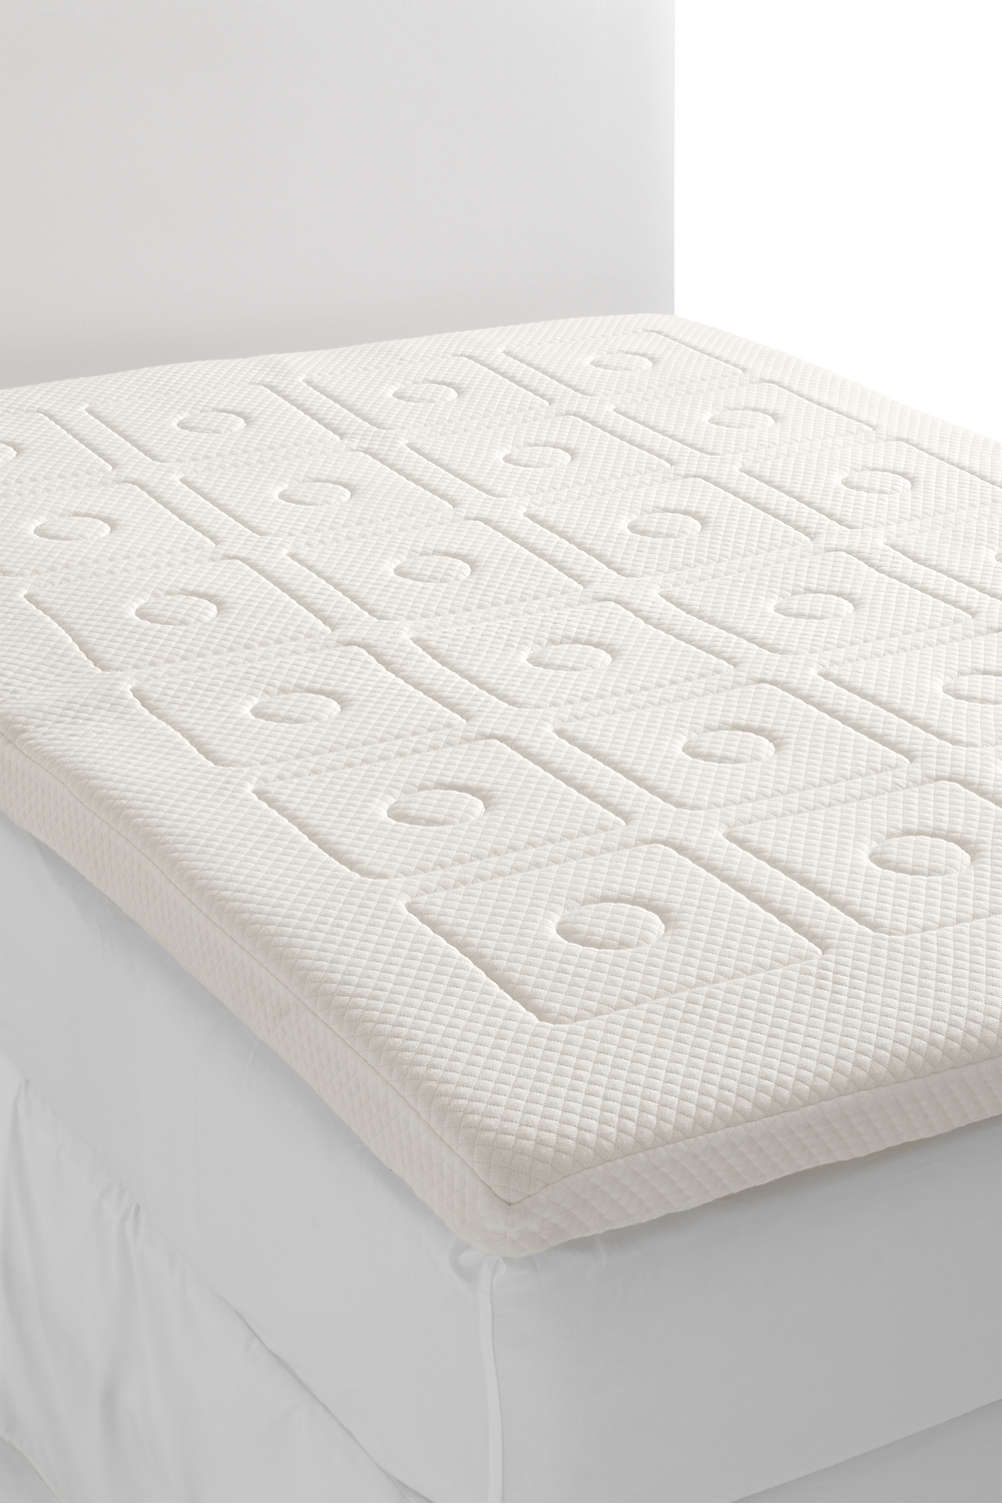 Memory Foam Bed Topper From Lands End